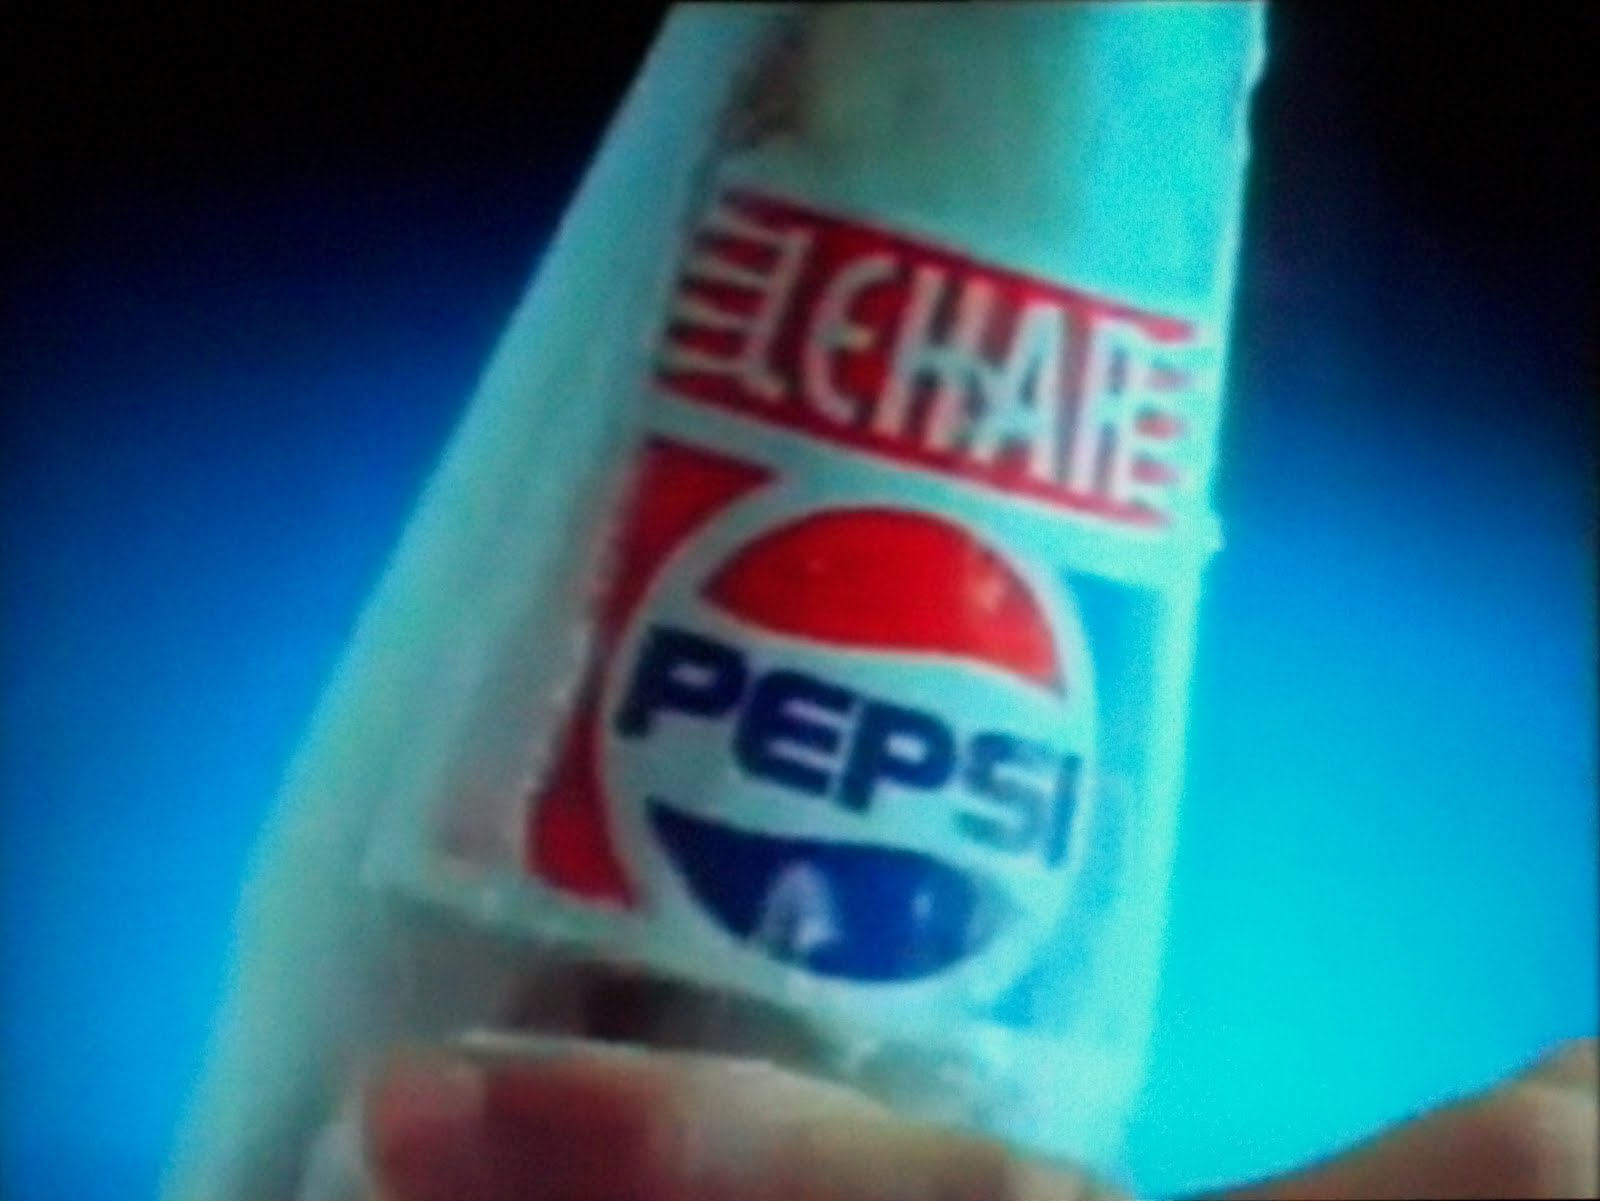 Dr Anil - Marketing Musings: Second Time lucky for Pepsi